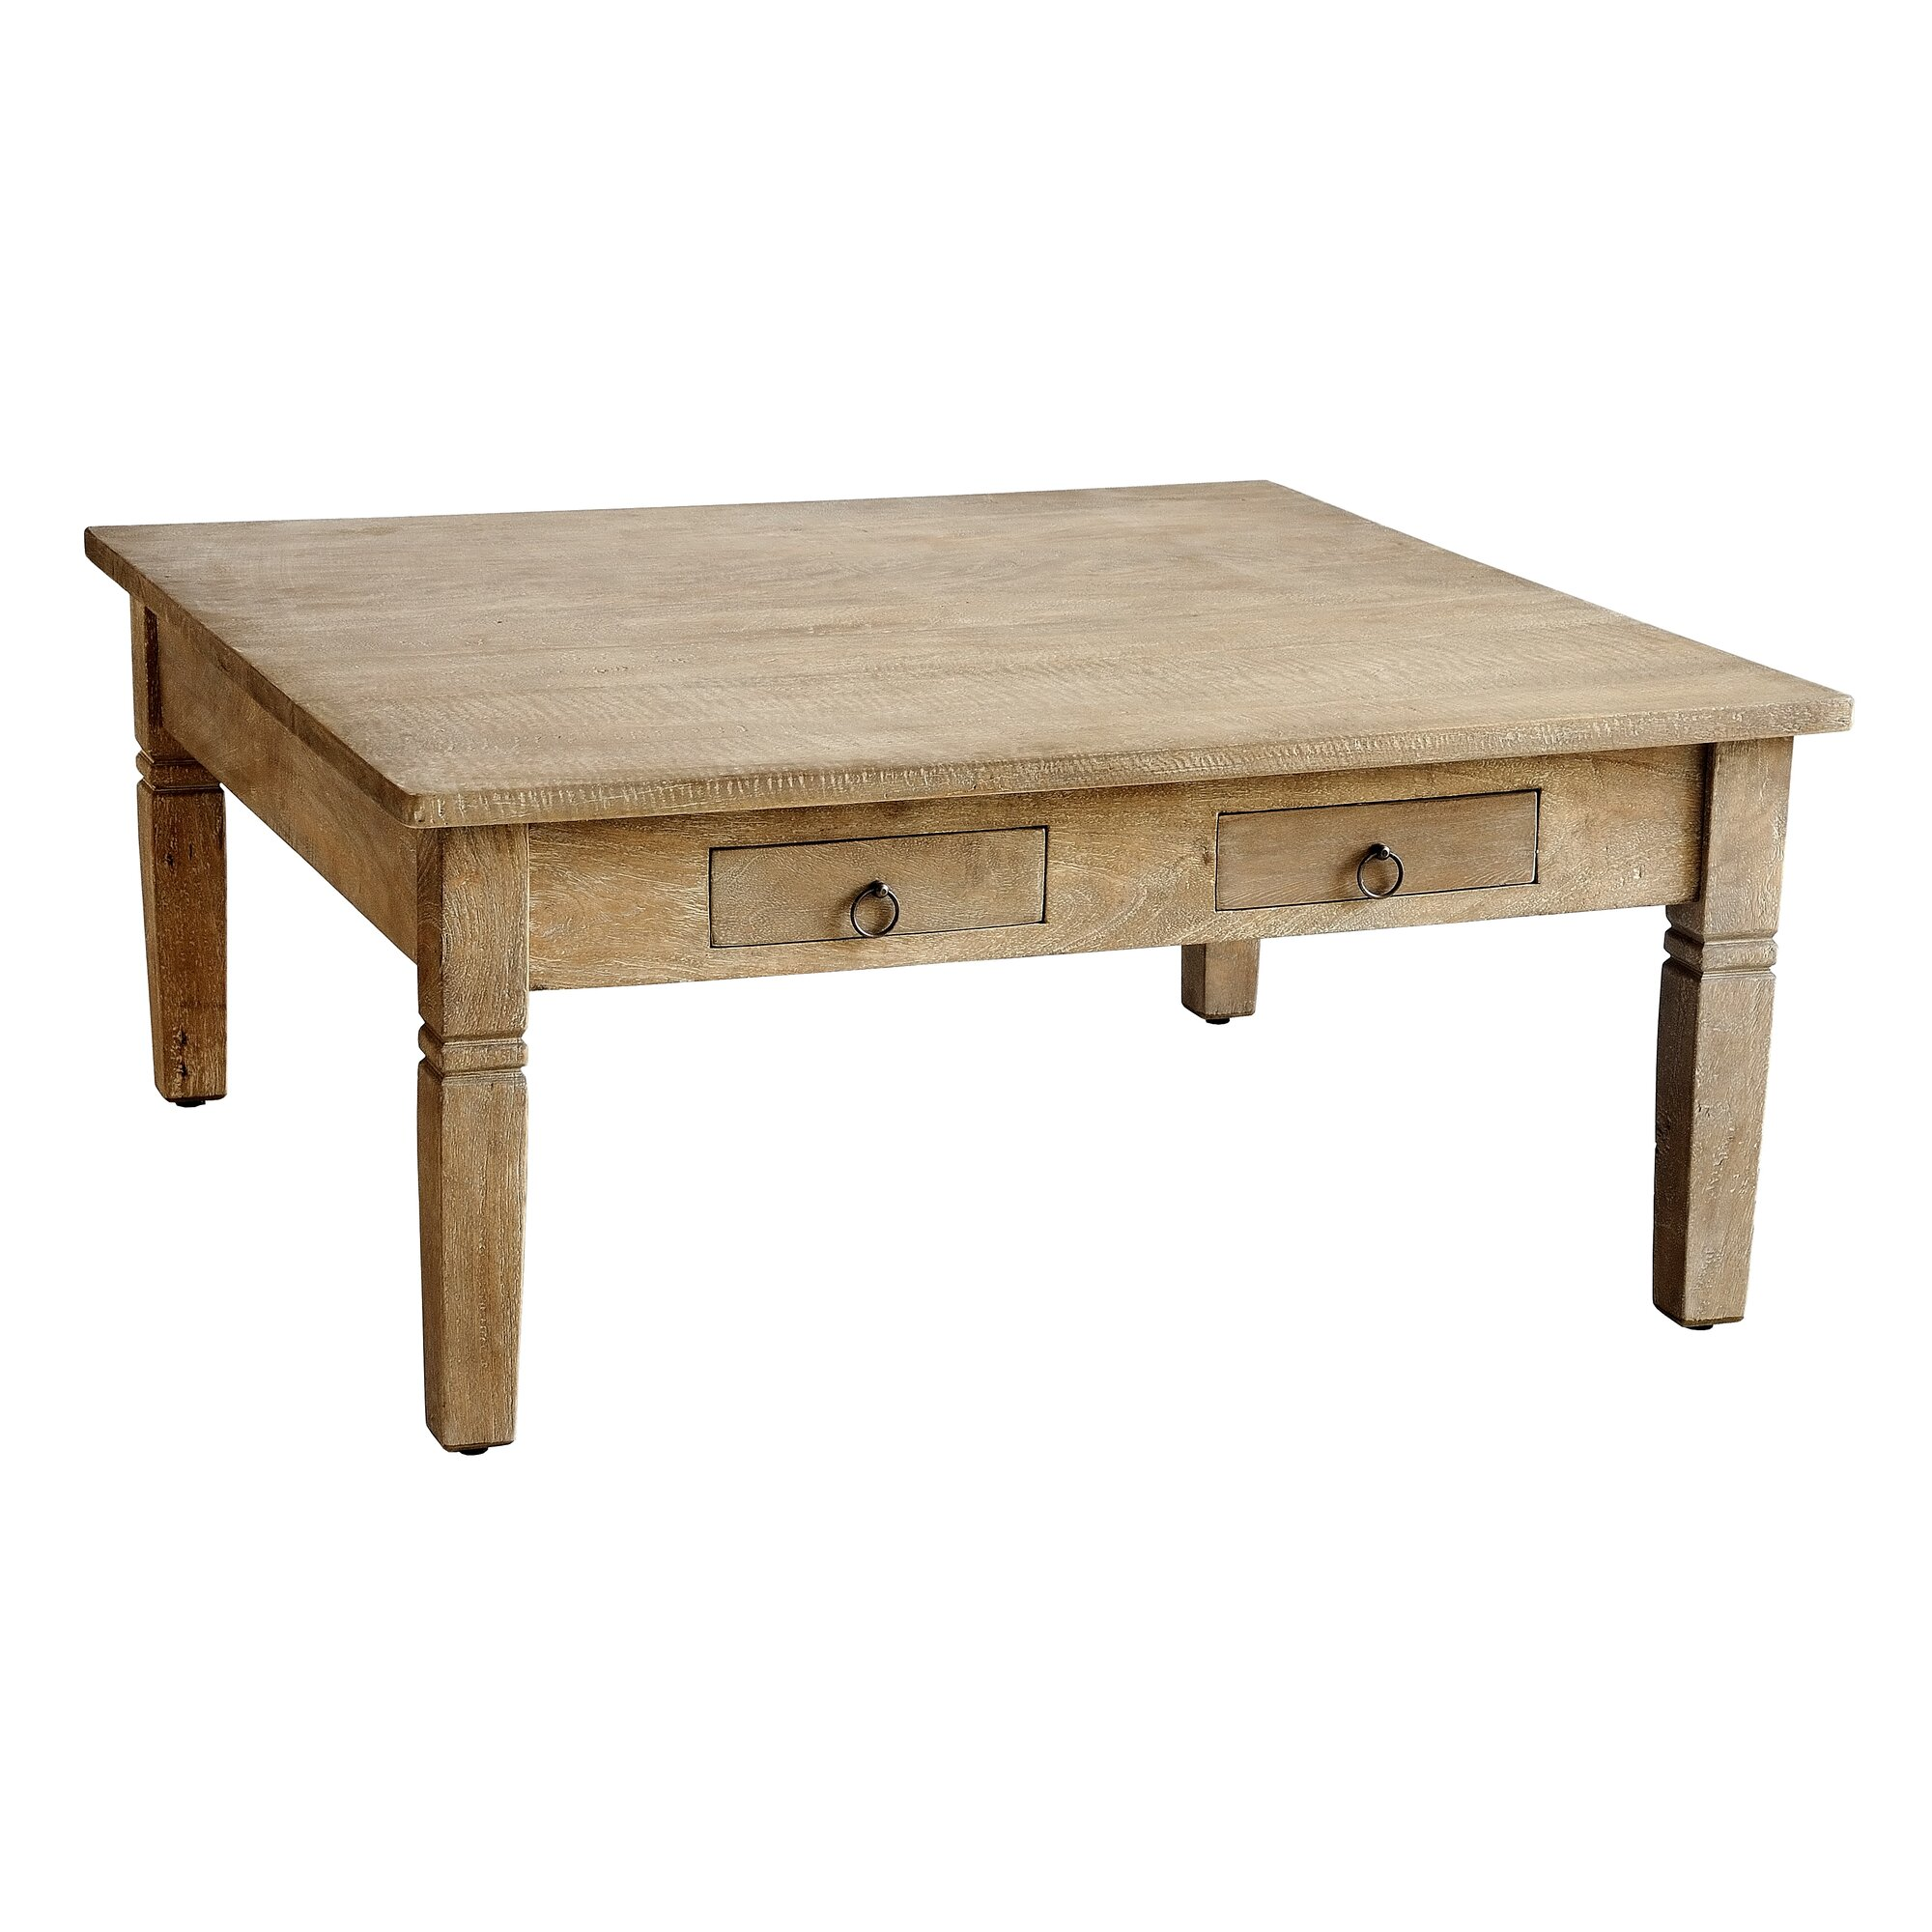 Jerome S Square Coffee Table: Casual Elements Sedona Square Coffee Table & Reviews